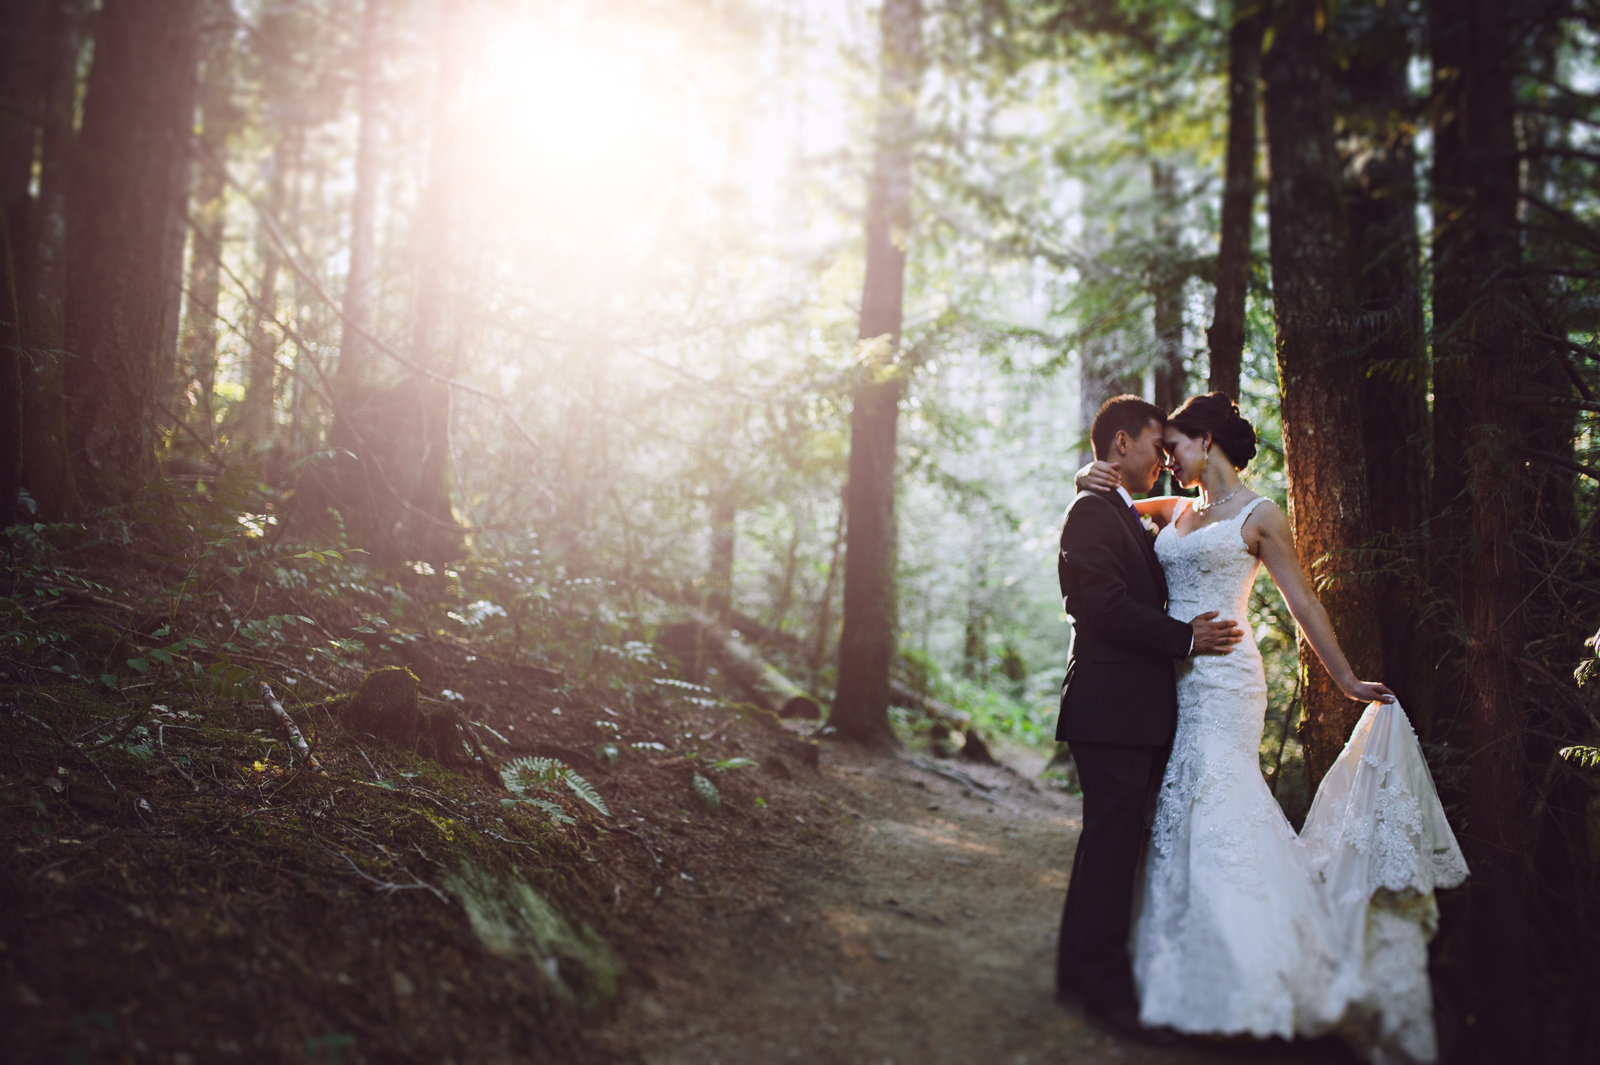 Artistic-Wedding-Photographer-27